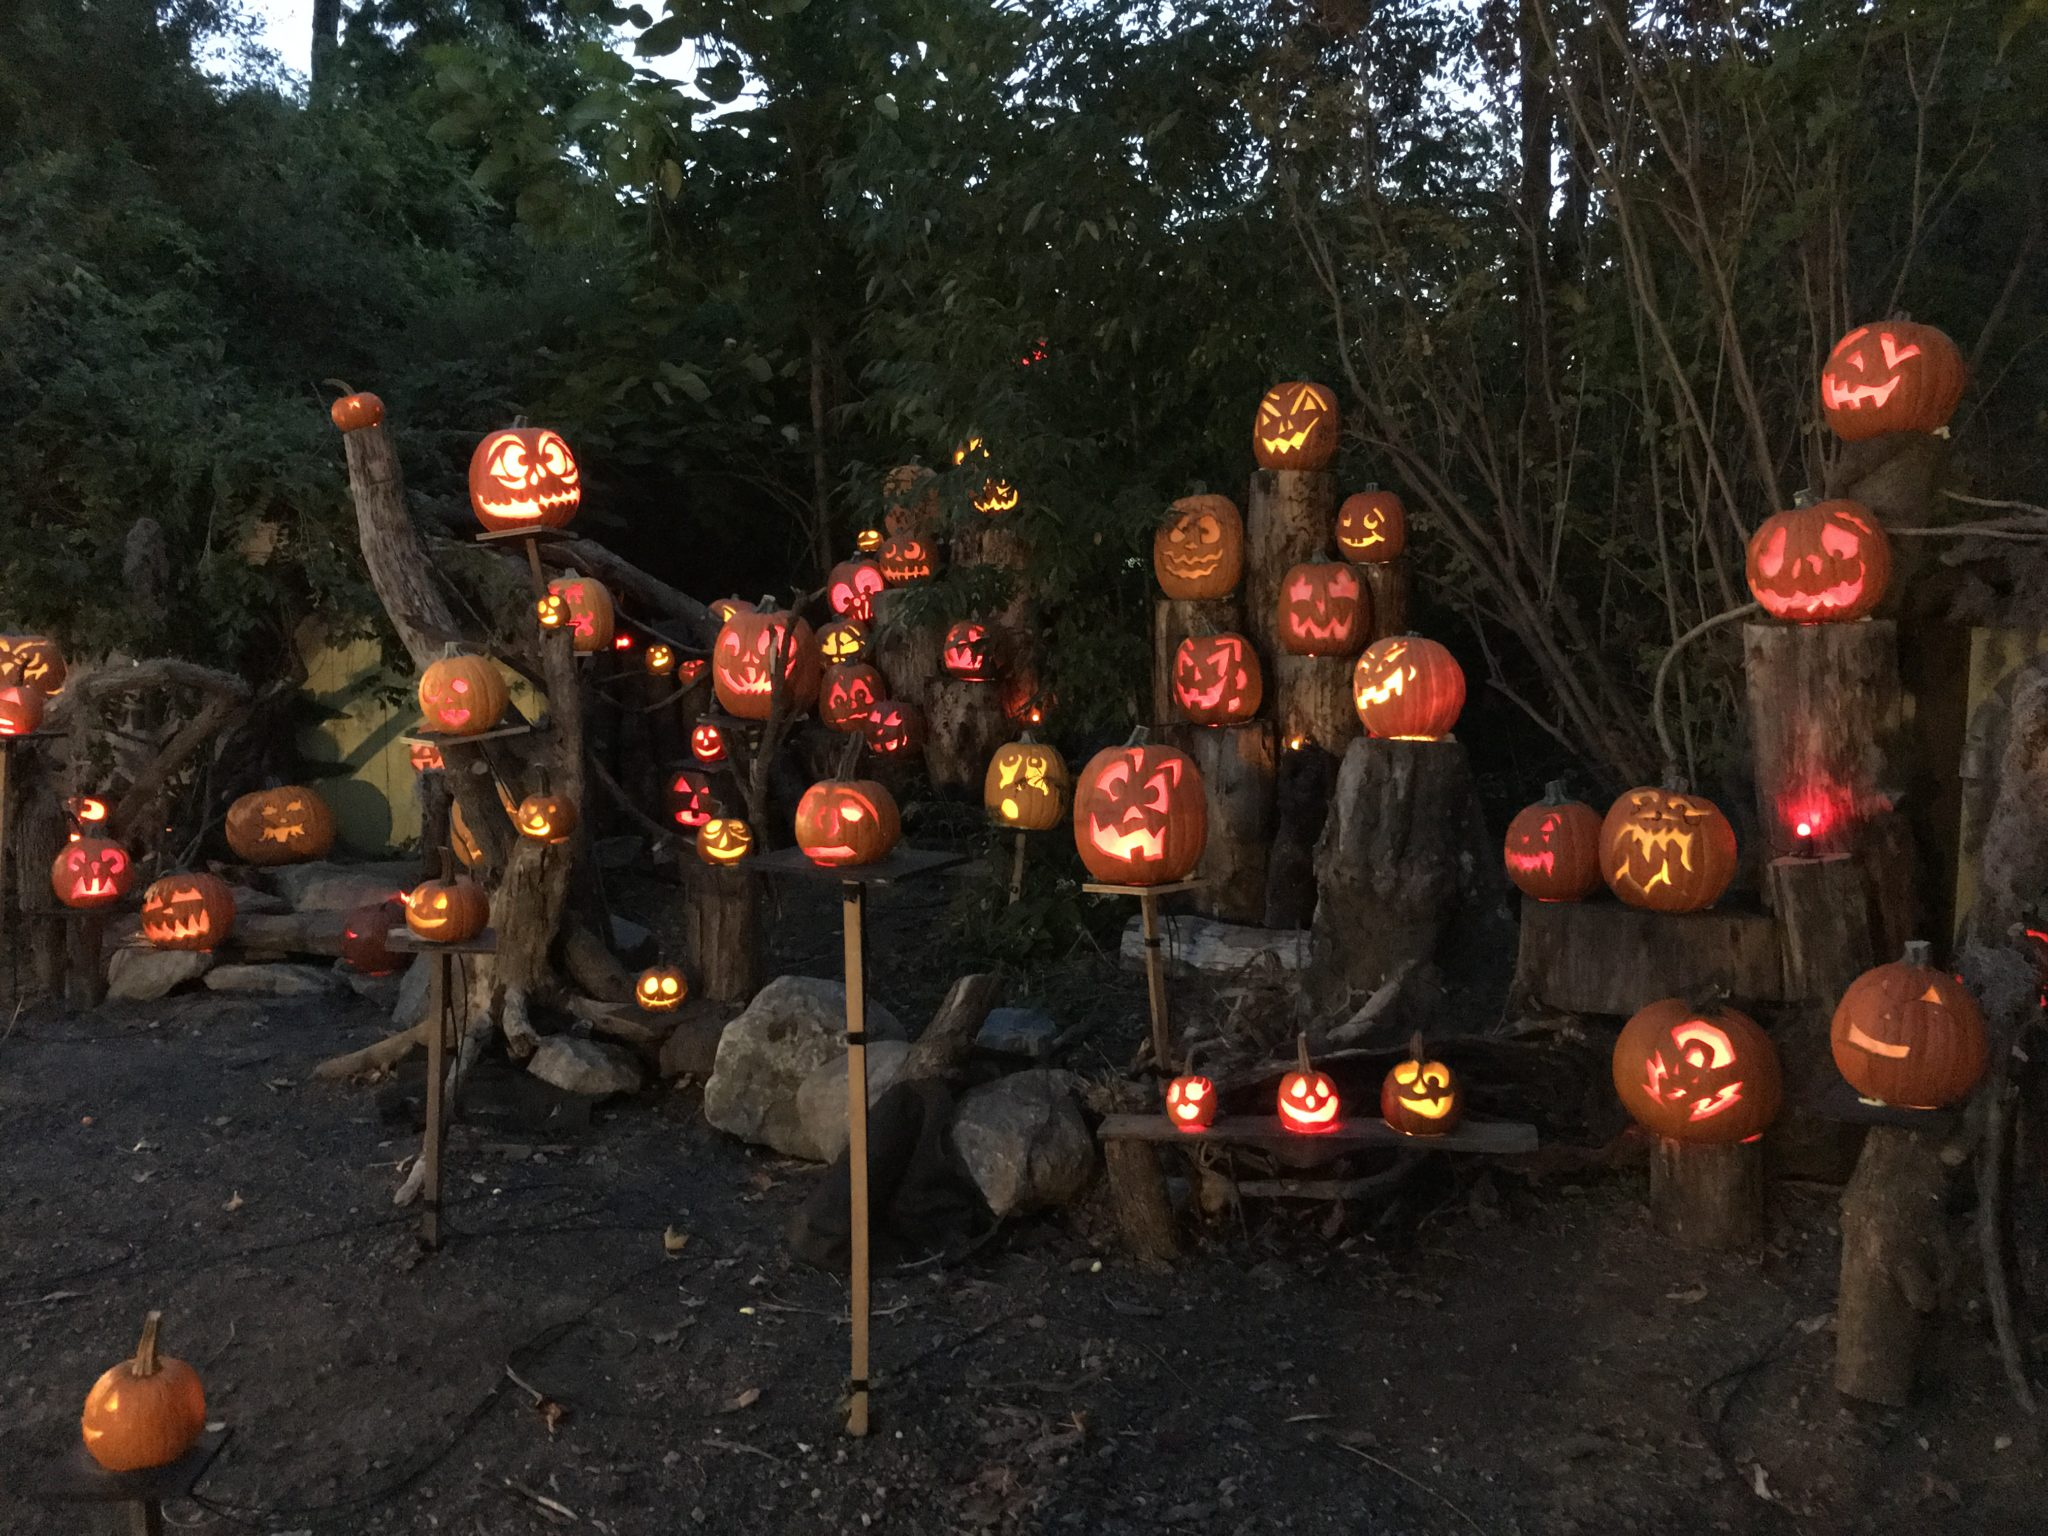 The Jack O'Lantern Spectacular is a nighttime display of 5,000 illuminated jack-o-lanterns all along the zoo's beautiful Wetlands Trail.